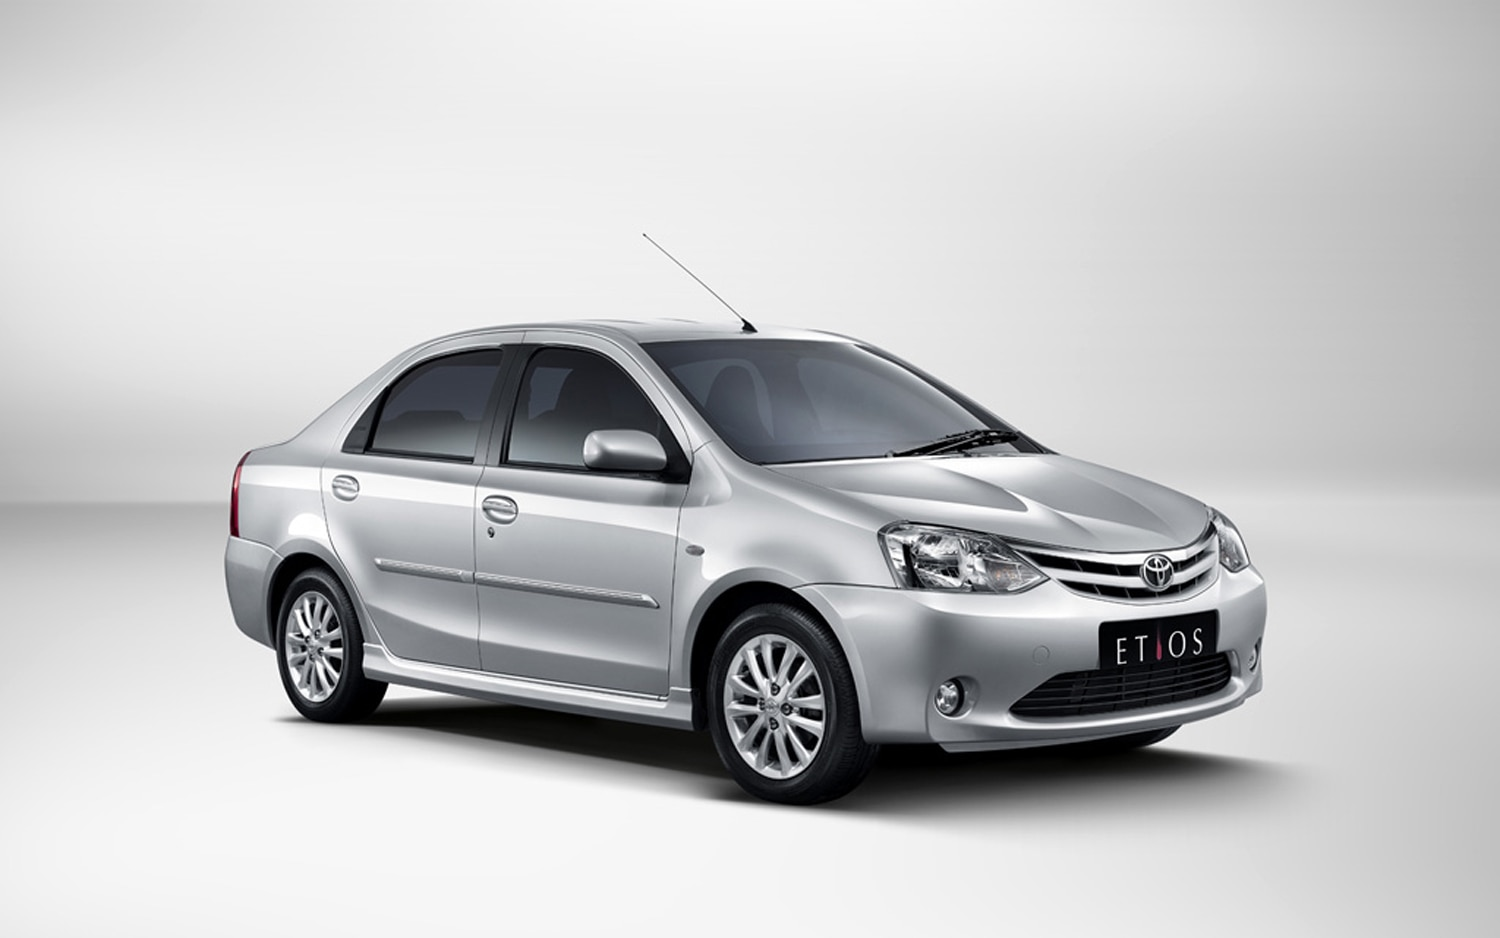 2012 Toyota Etios Front Three Quarter 31